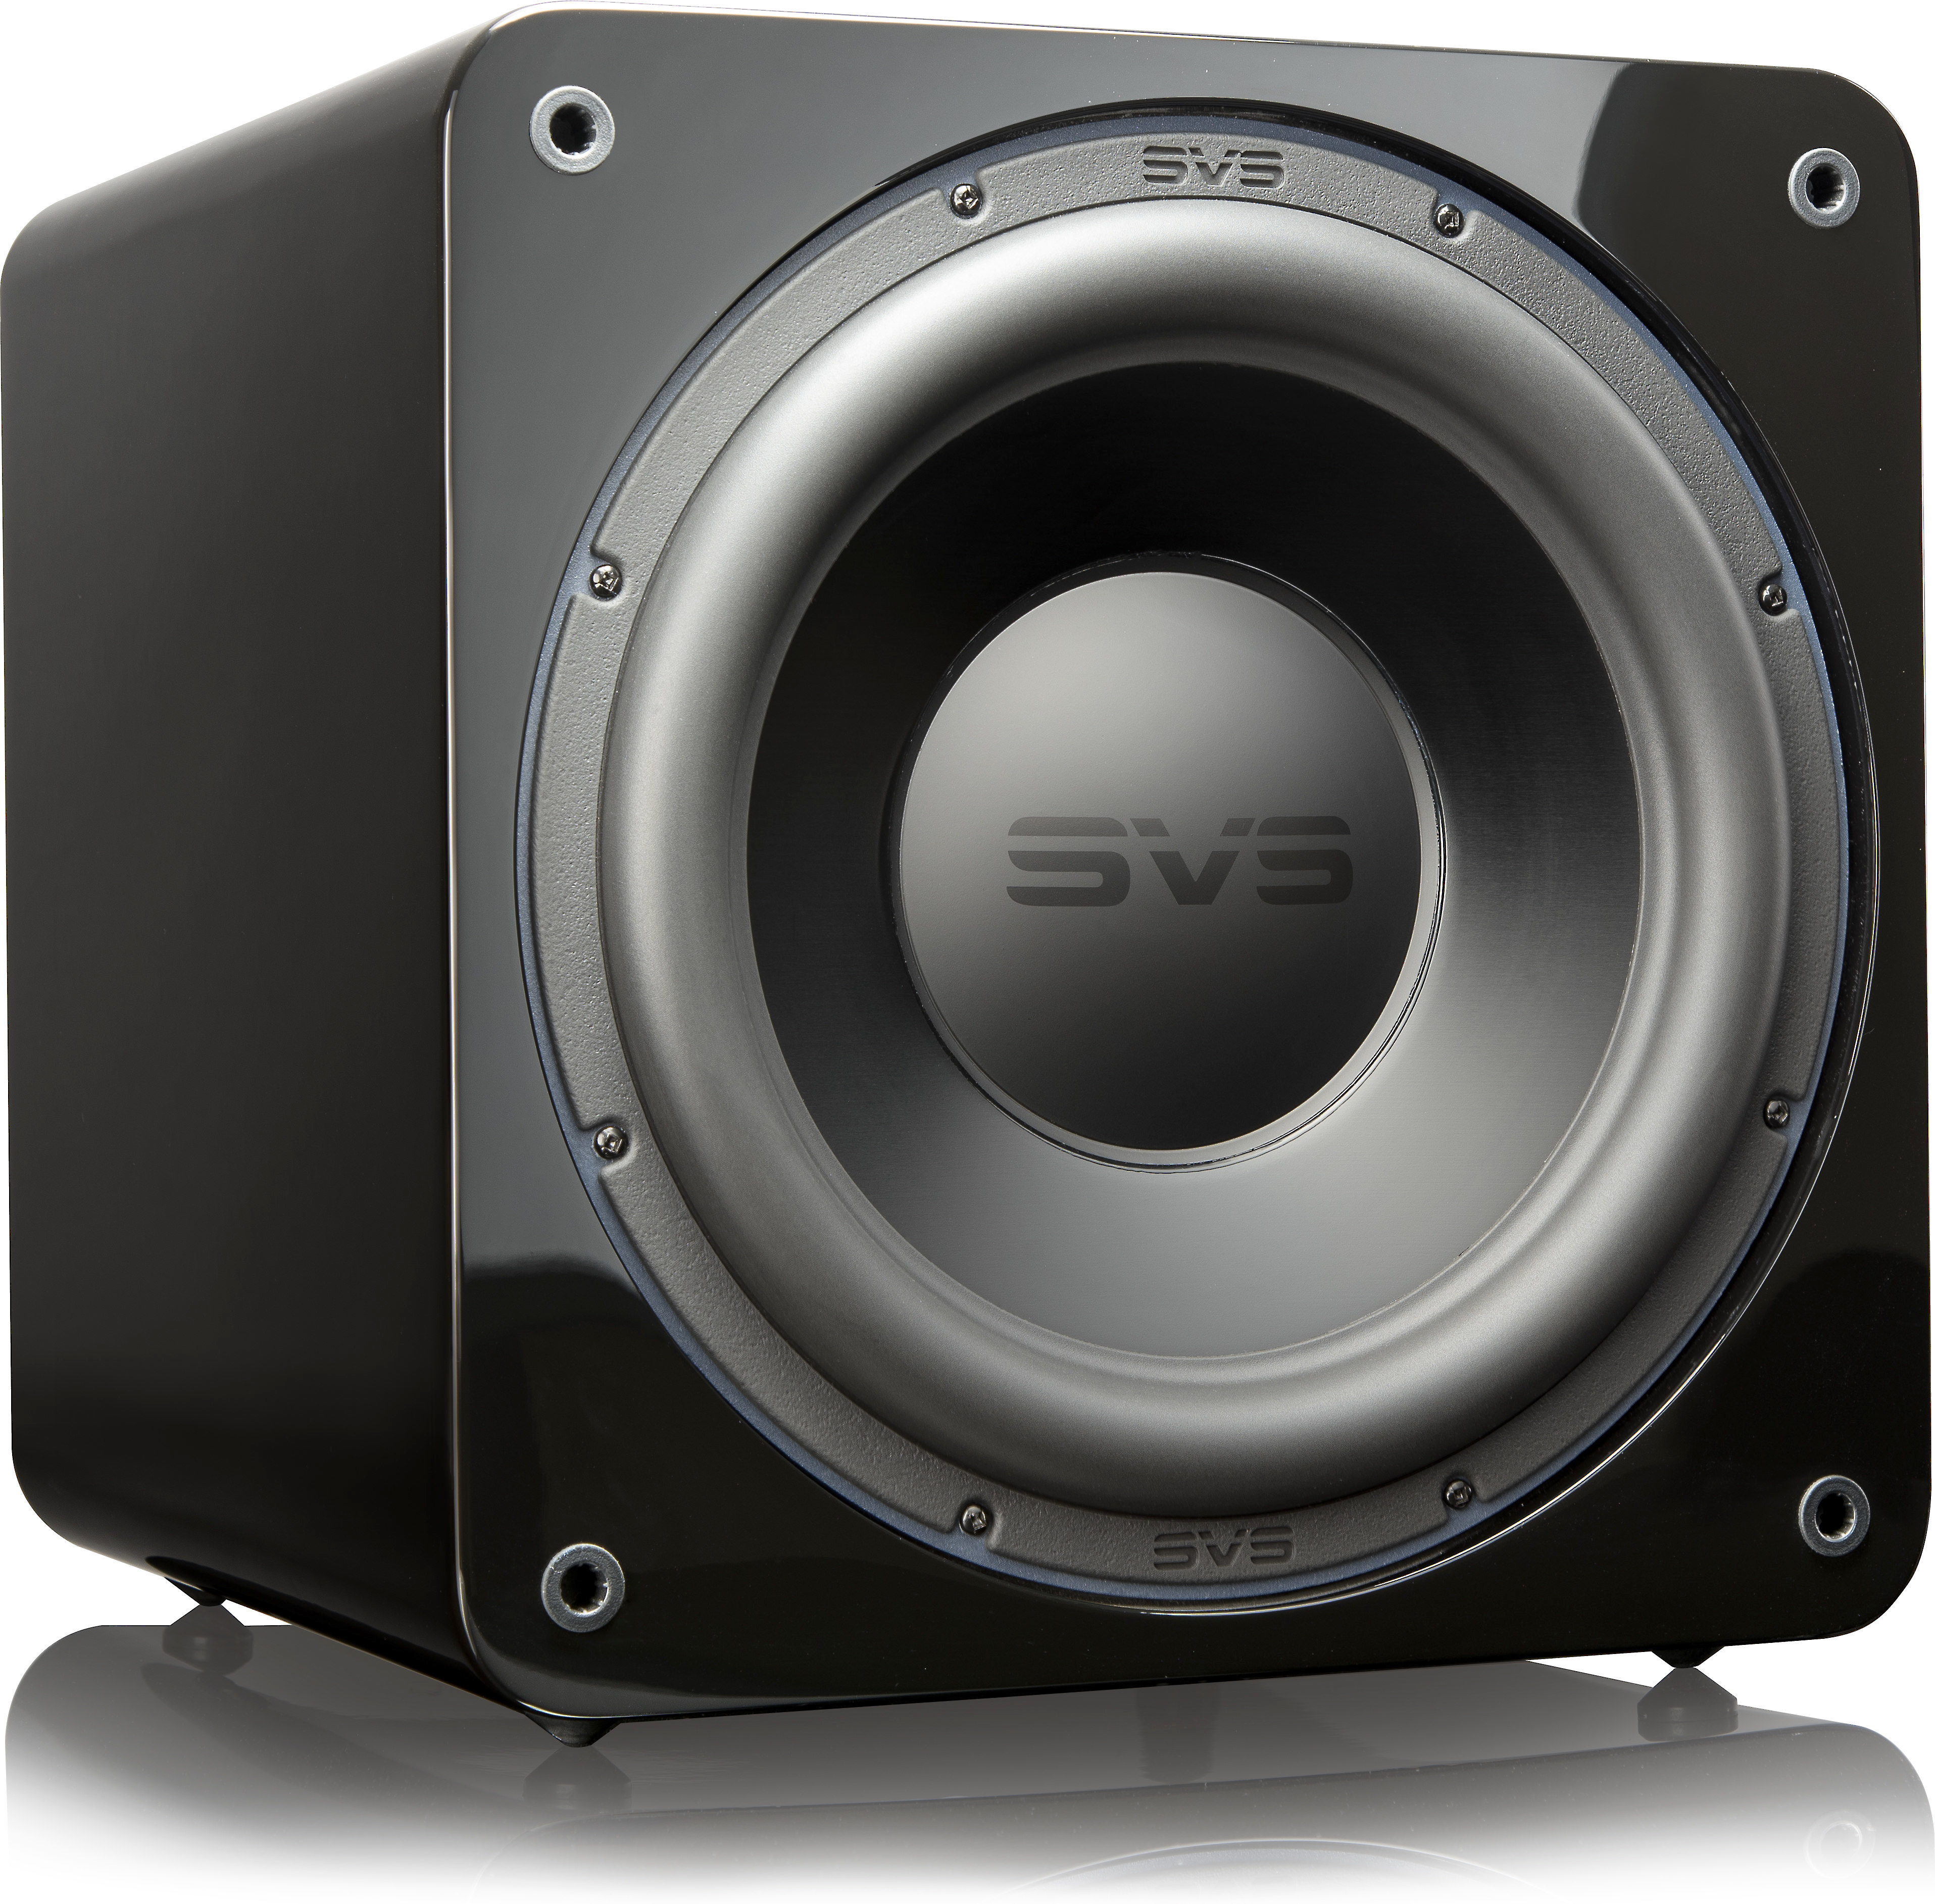 Svs Sb 3000 Piano Gloss Black Powered Subwoofer With App Control